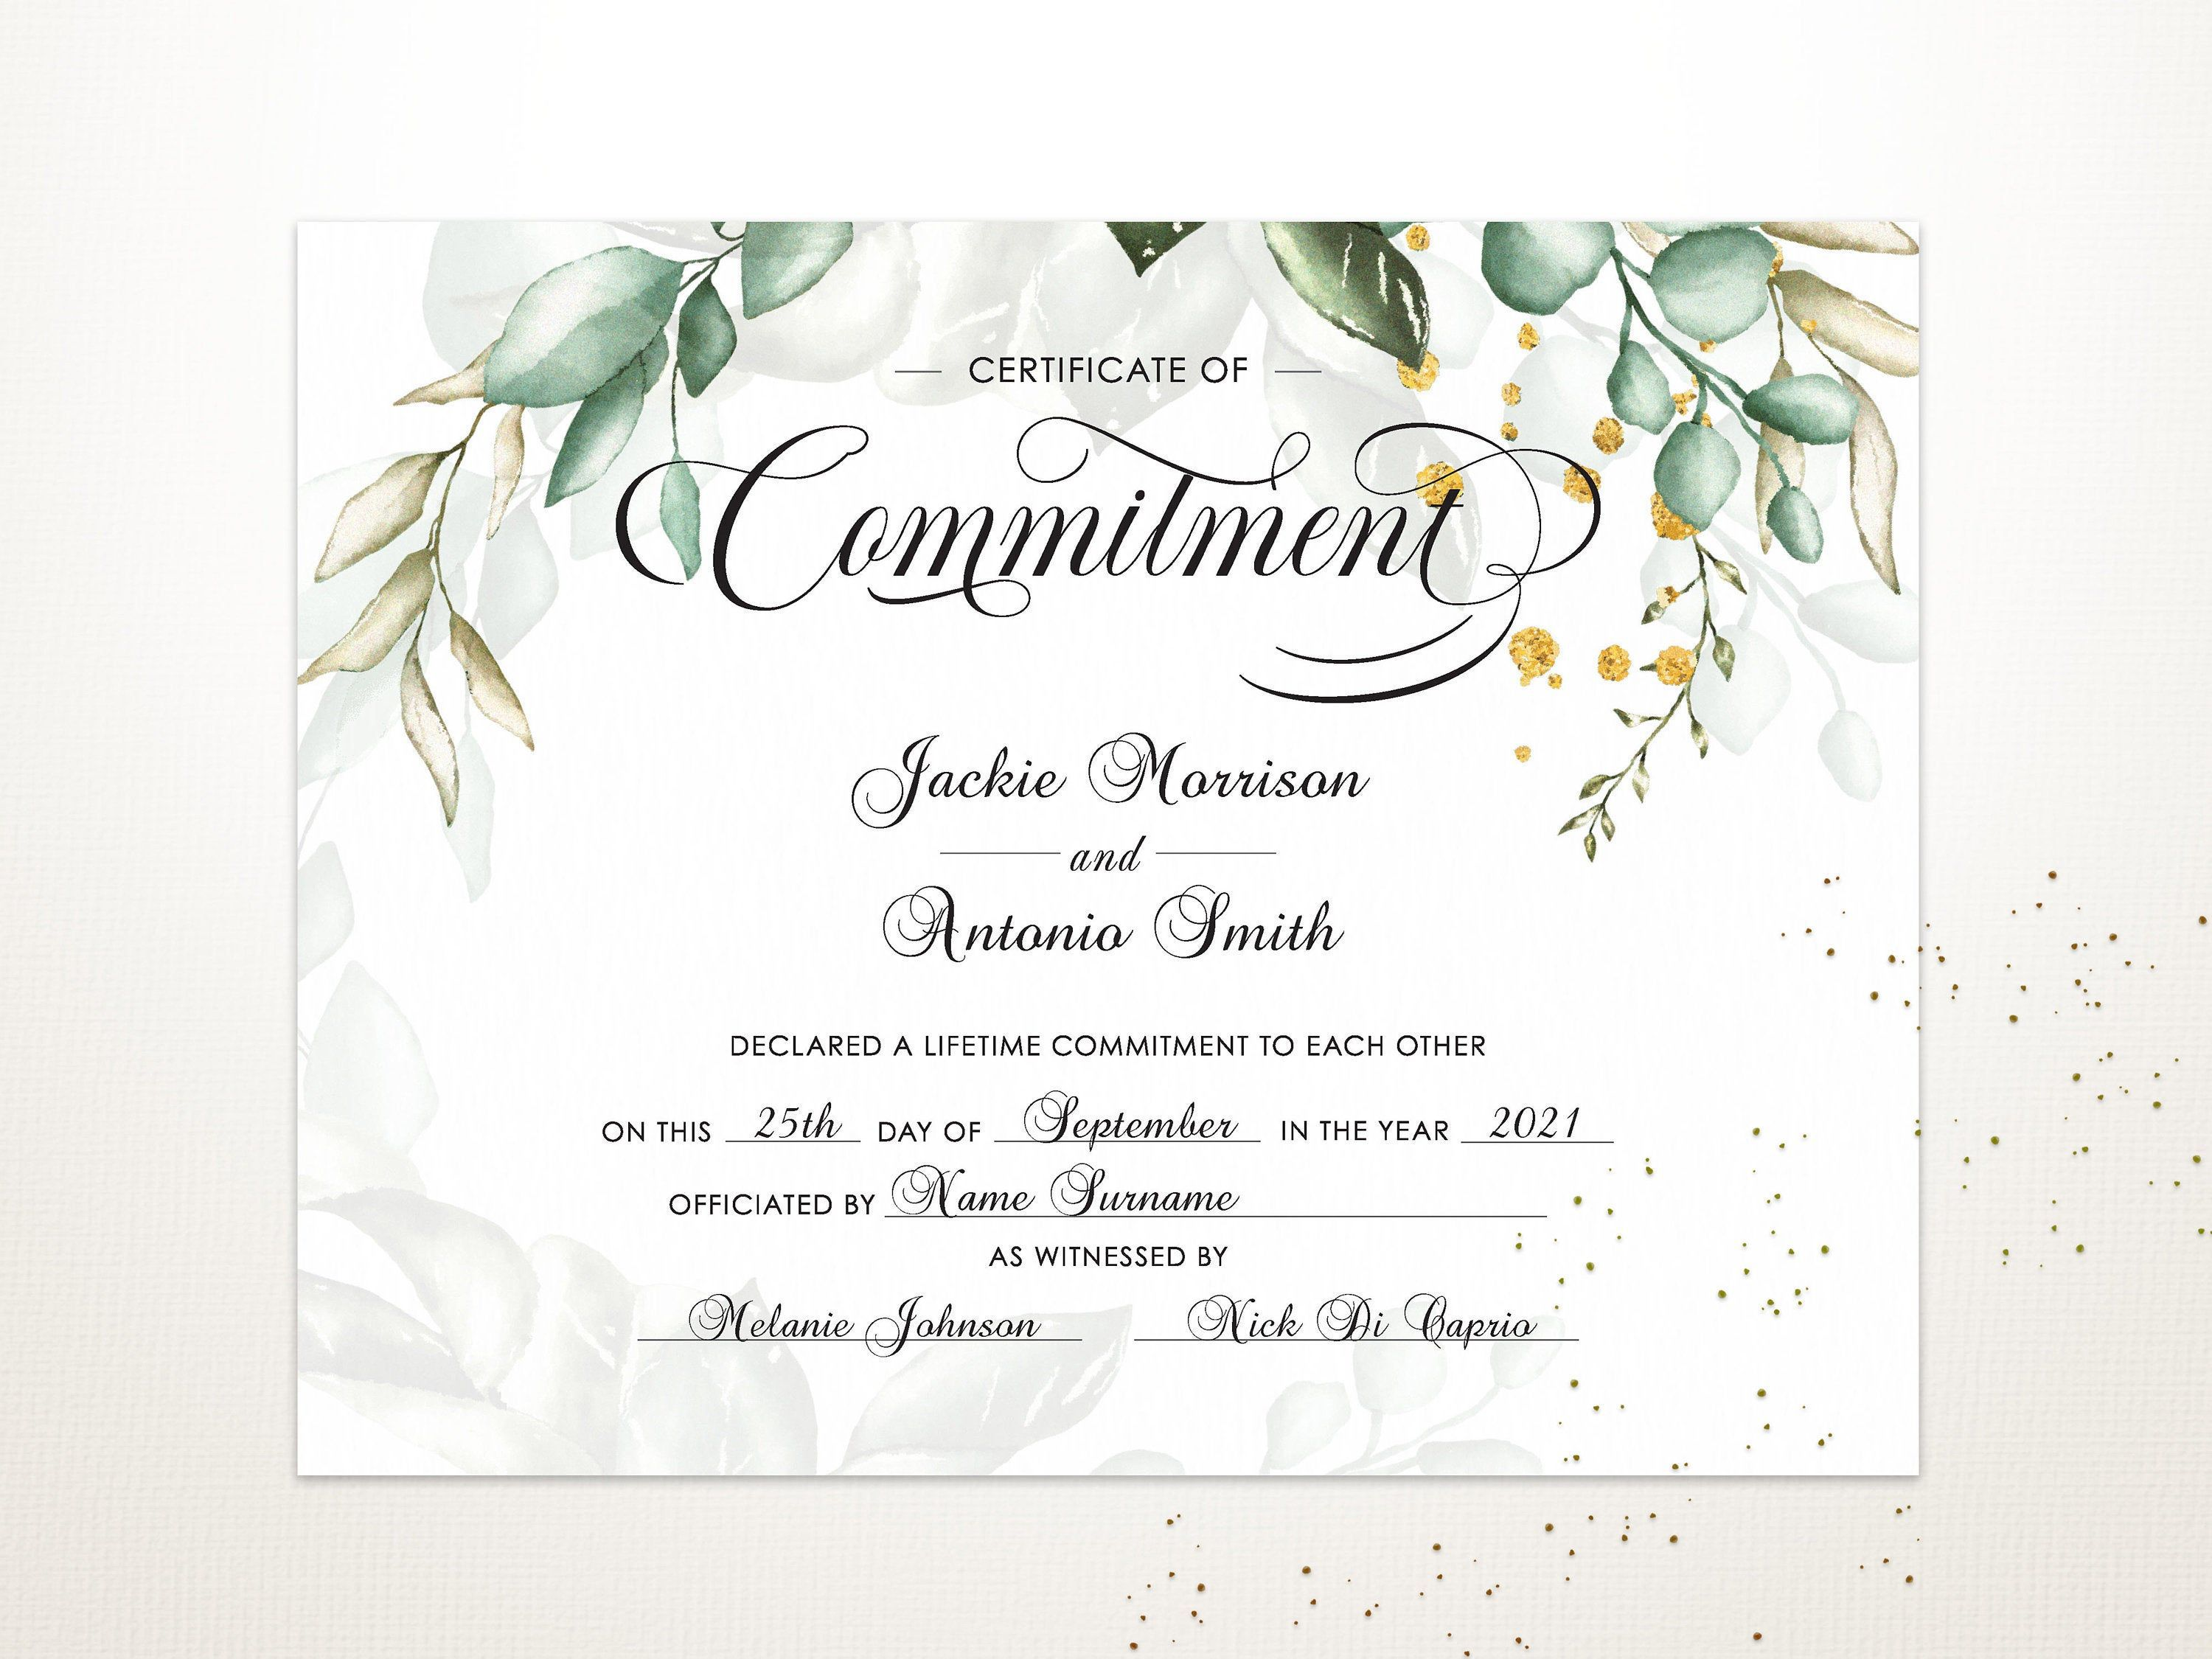 005 Exceptional Free Marriage Certificate Template High Def  Renewal Translation From Spanish To English Wedding DownloadFull